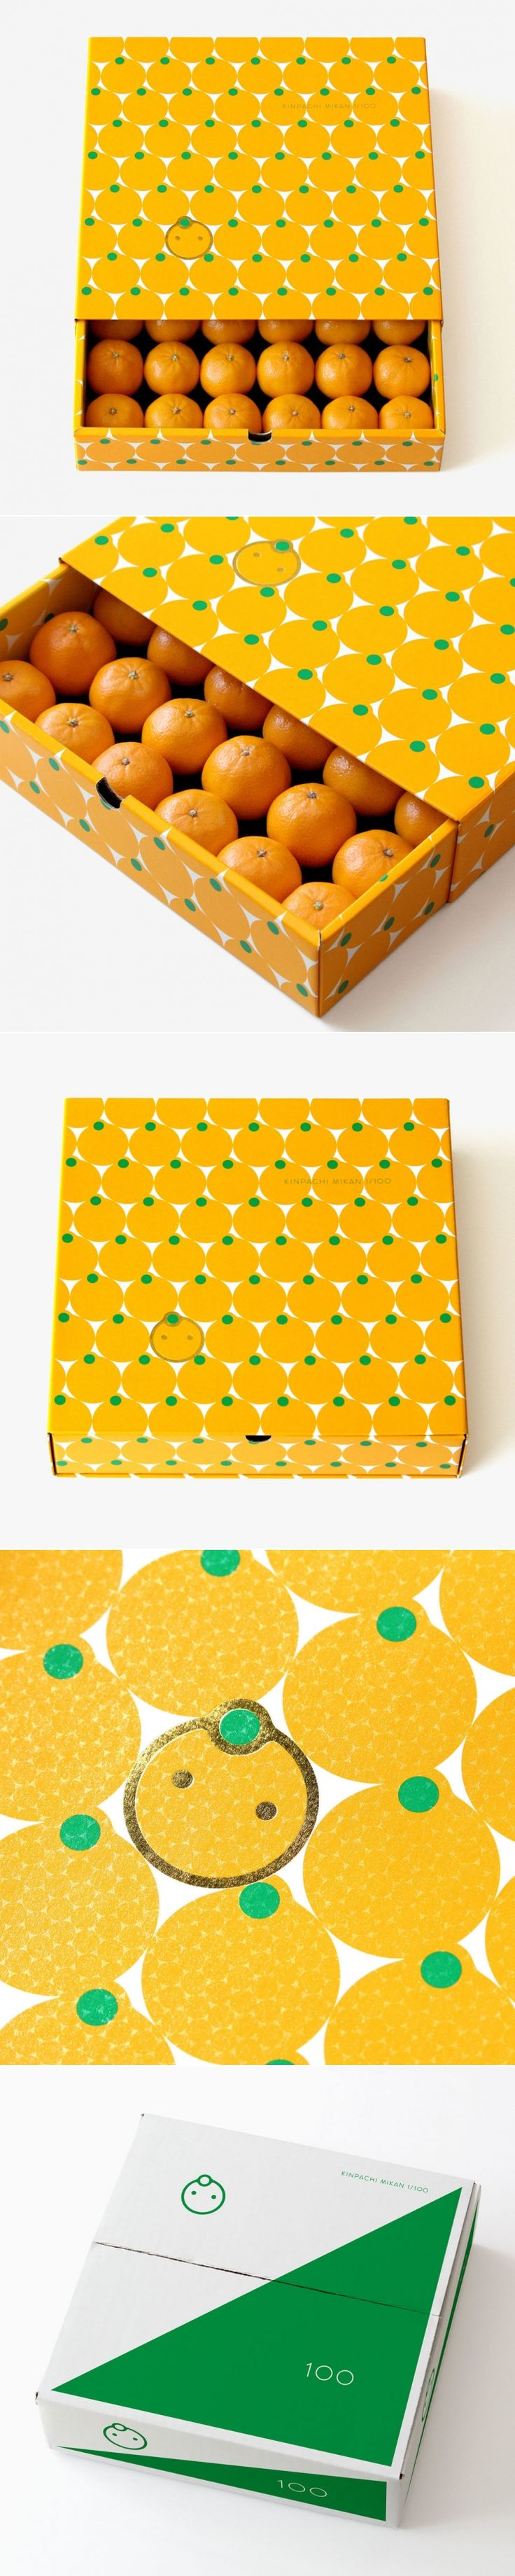 These Special Japanese Oranges Come With Adorable Packaging — The Dieline | Packaging & Branding Design & Innovation News